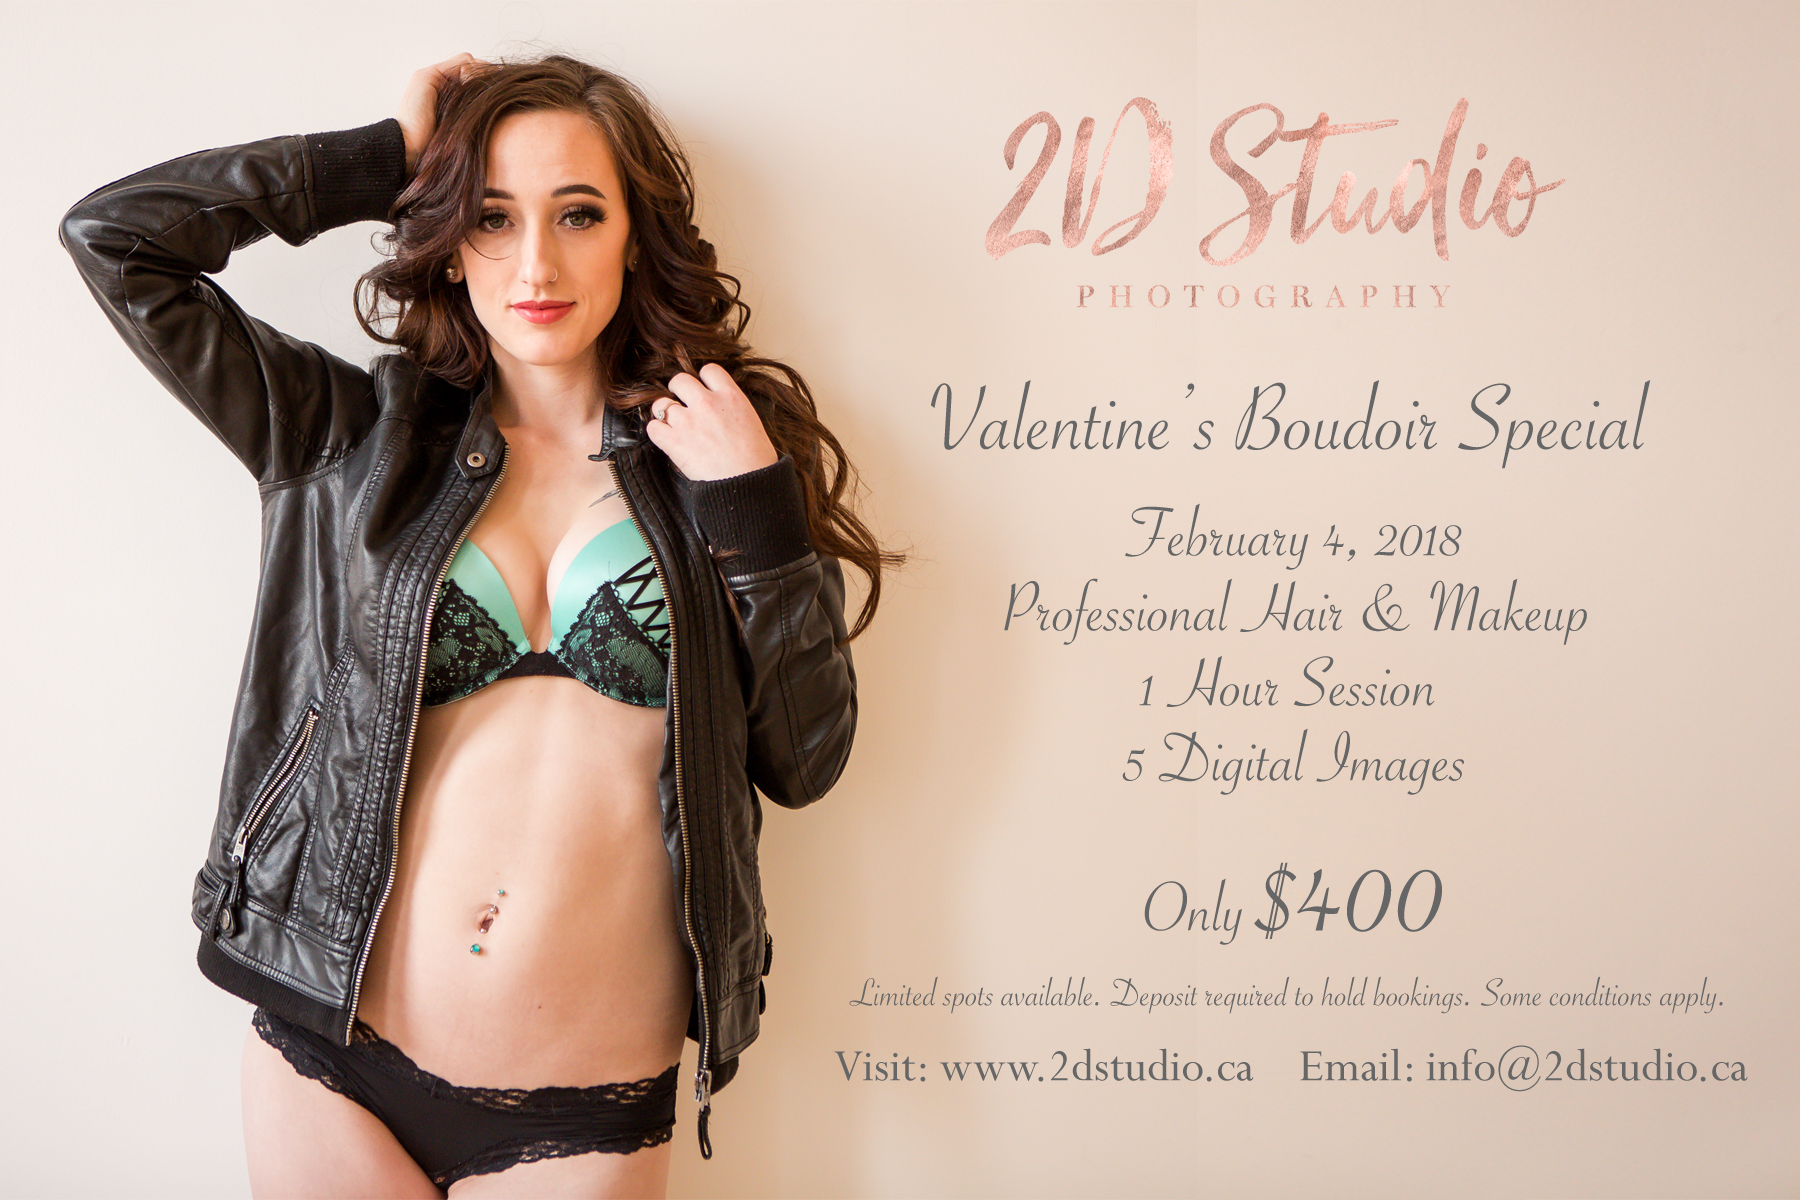 Valentine's Boudoir Special Package